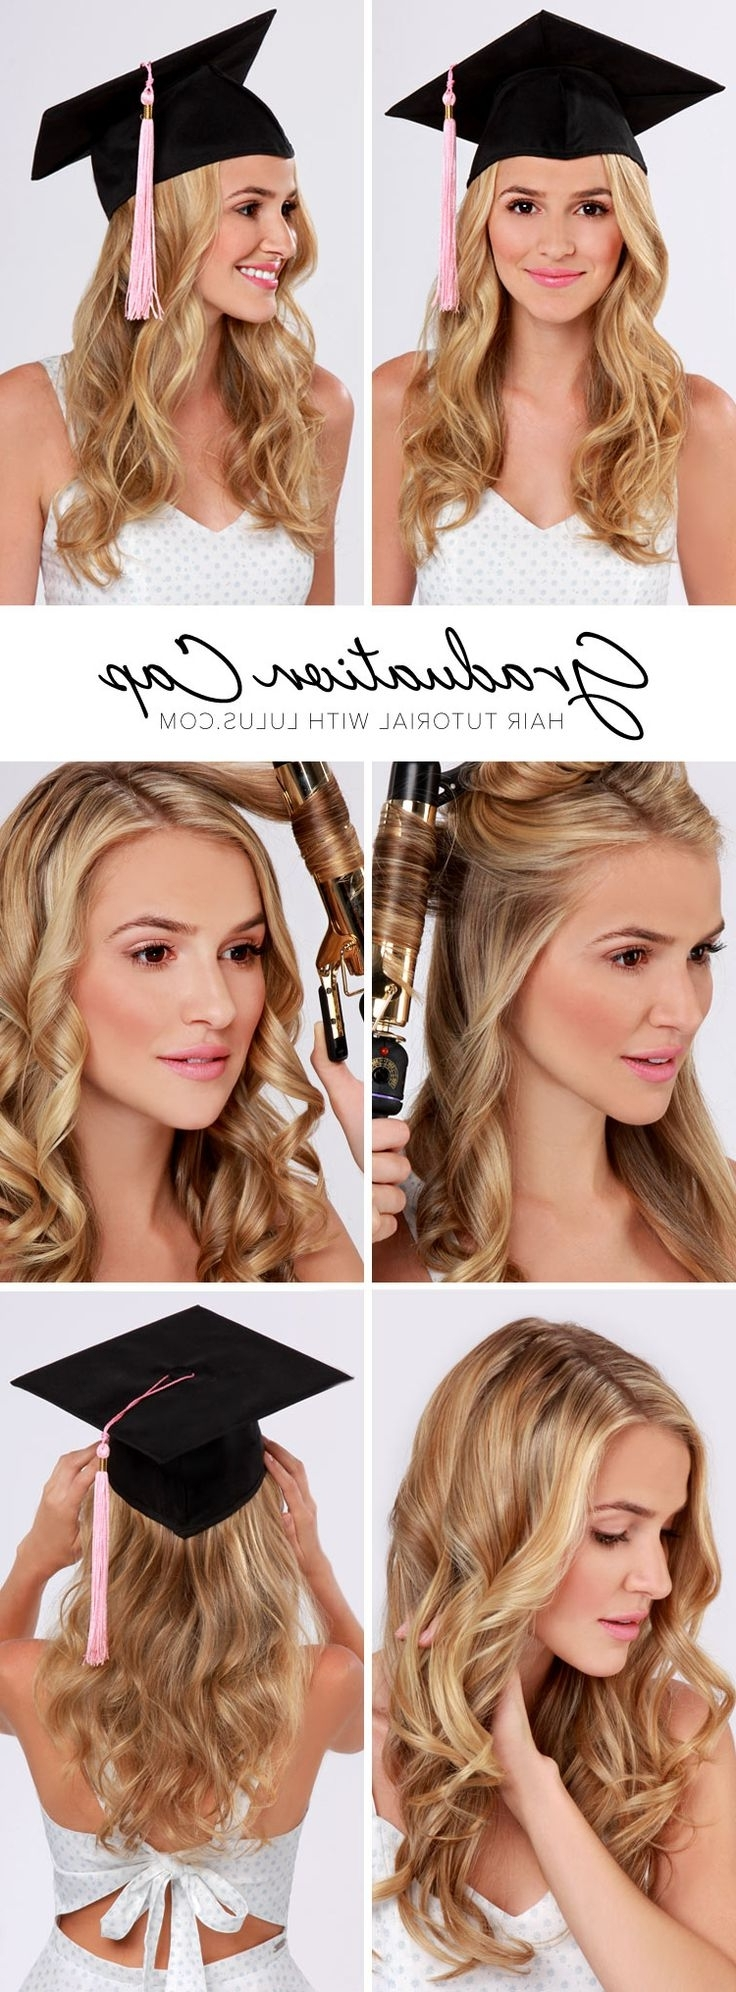 10 Cute And Simple Hair Style Ideas For Graduation Project Hairstyles For Medium Length Hair For Graduation